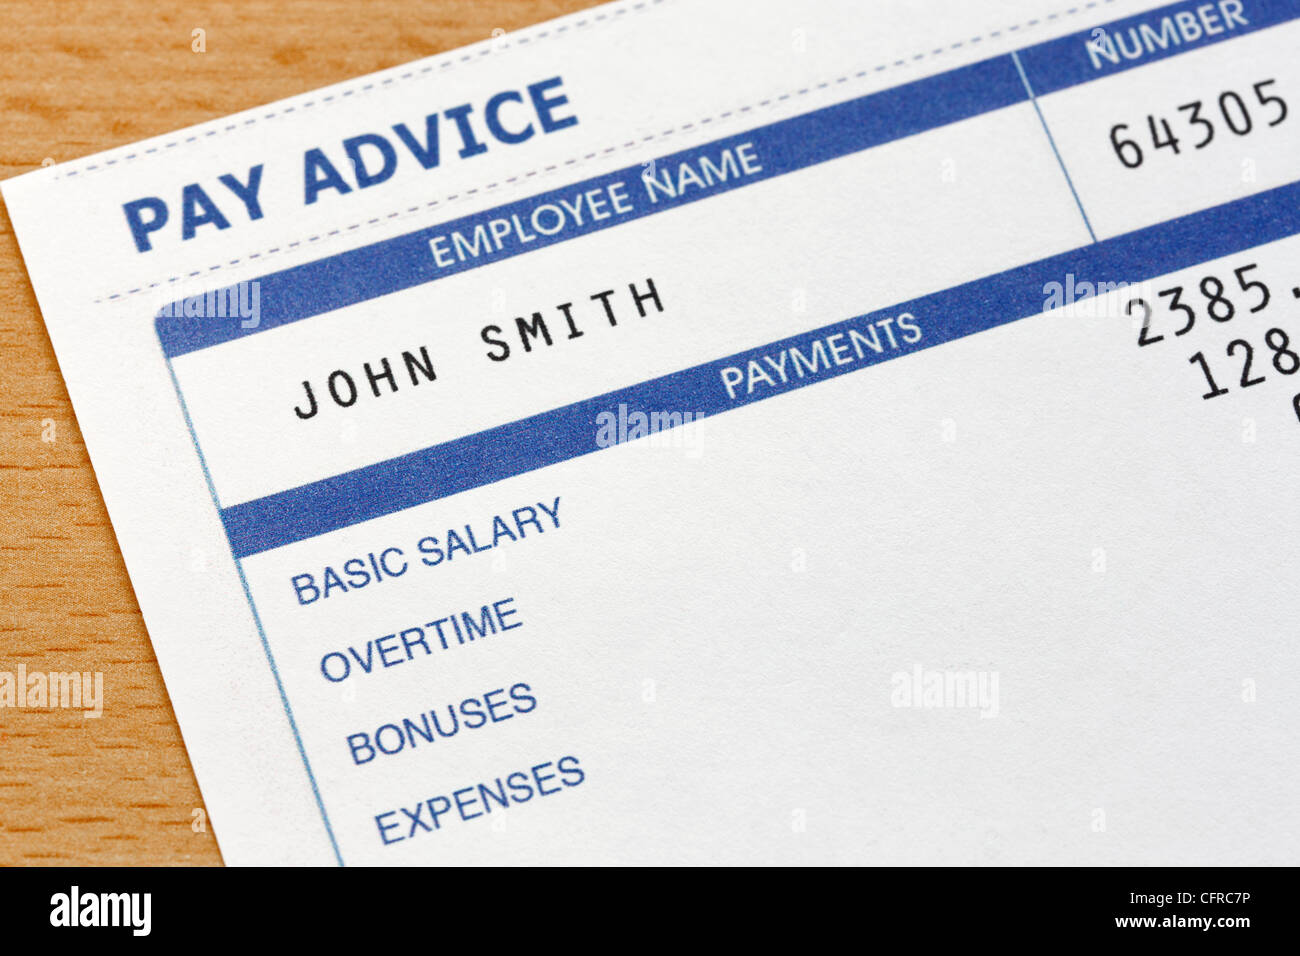 Photo of a payslip. The payslip is a mock up the names and all other information on it is fictional. - Stock Image